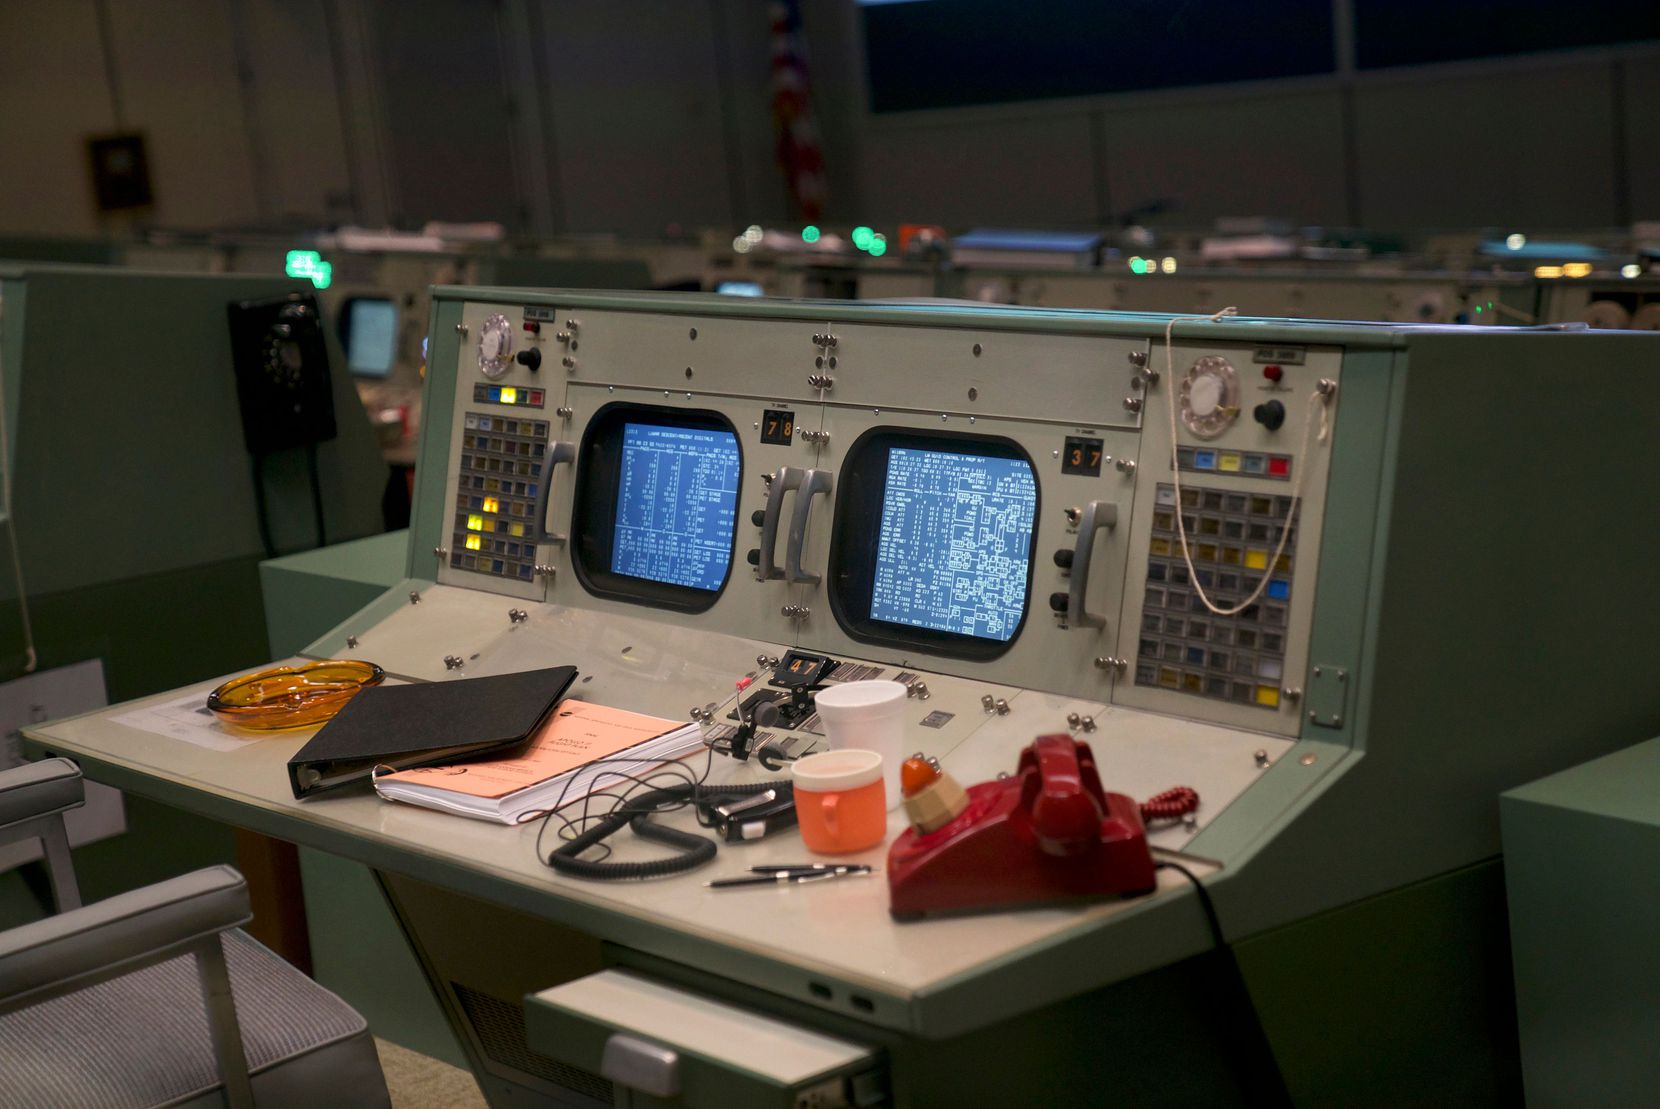 Fifty years after handling the Apollo 11 mission, the Apollo Mission Control Room at NASA's Johnson Space Center in Houston has been painstakingly restored to appear just as it did back then, including exact reproductions of artifacts matching originals that were collected.